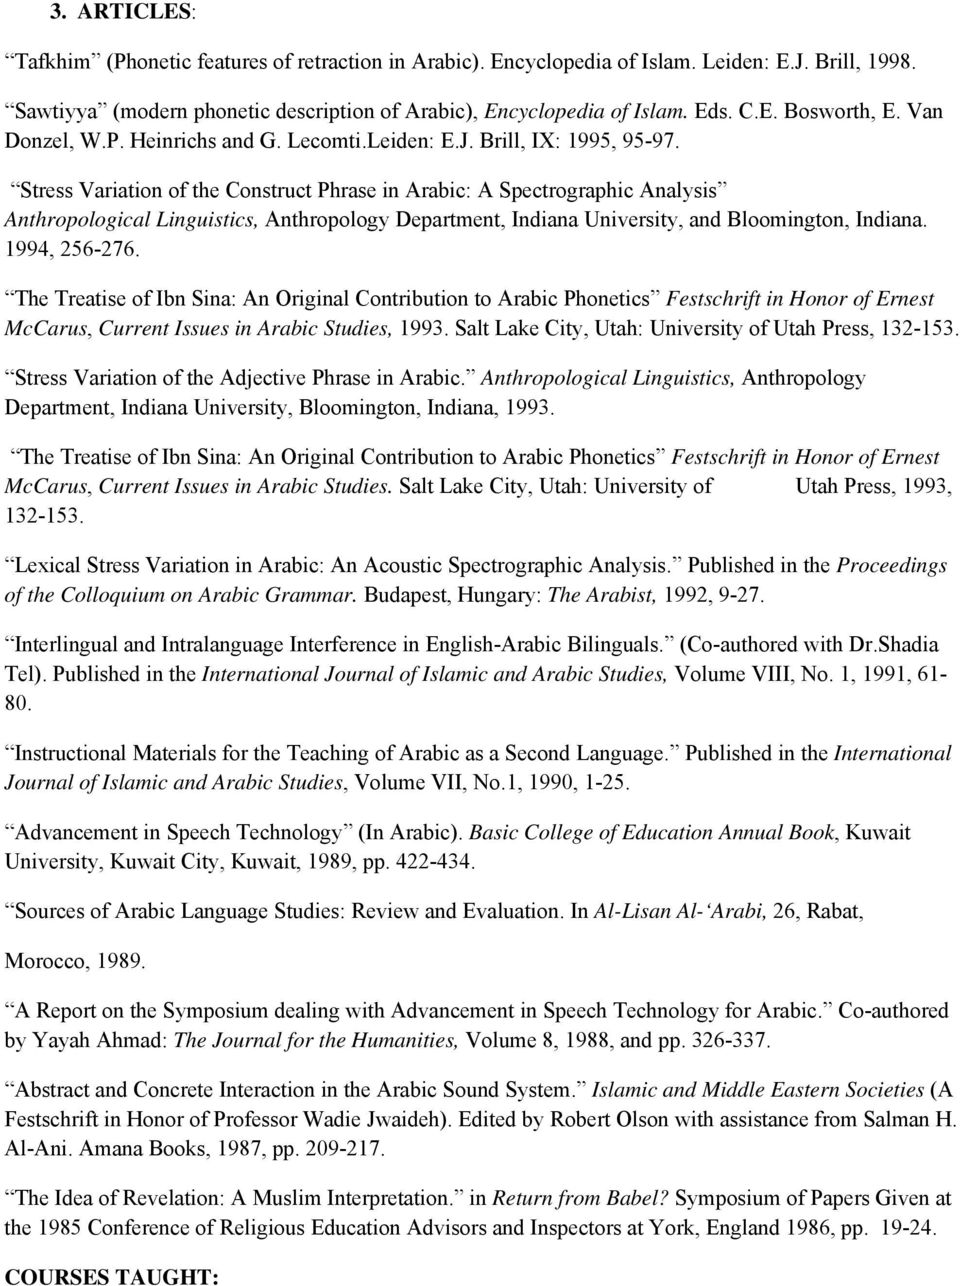 Stress Variation of the Construct Phrase in Arabic: A Spectrographic Analysis Anthropological Linguistics, Anthropology Department, Indiana University, and Bloomington, Indiana. 1994, 256-276.